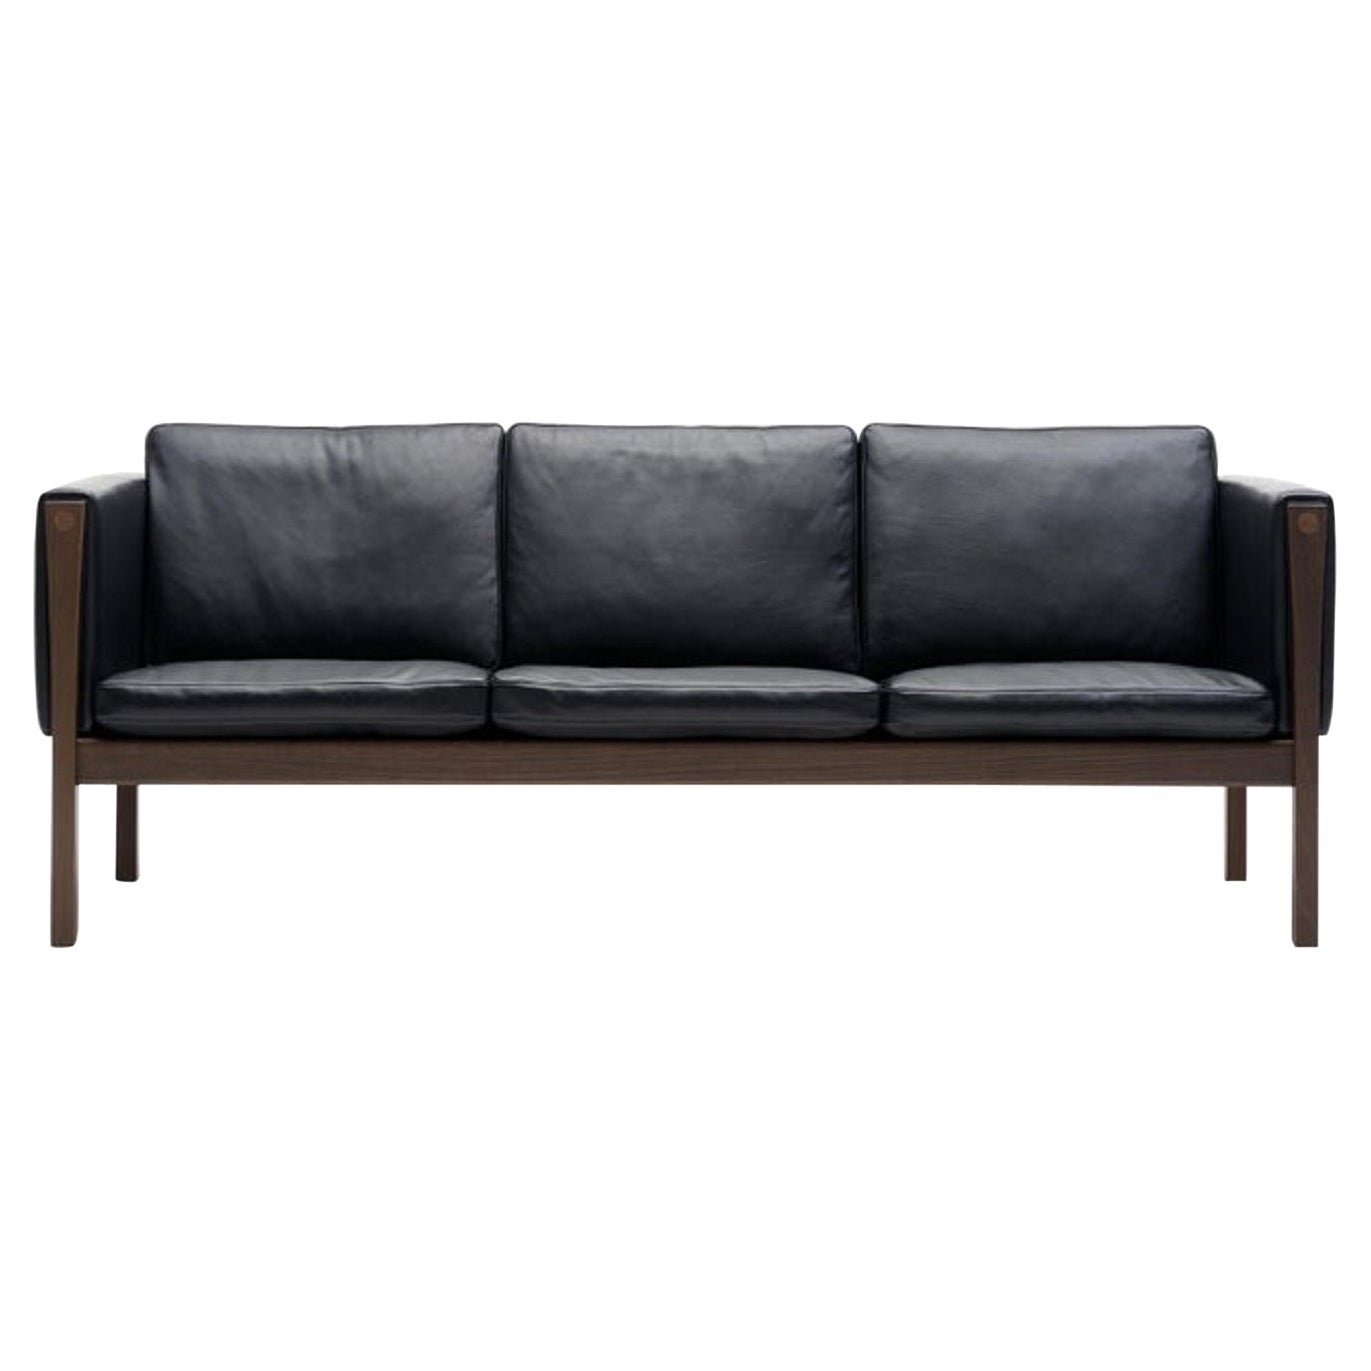 CH163 Sofa in Walnut Oil Frame with Sif 98 Leather Upholstery by Hans J. Wegner